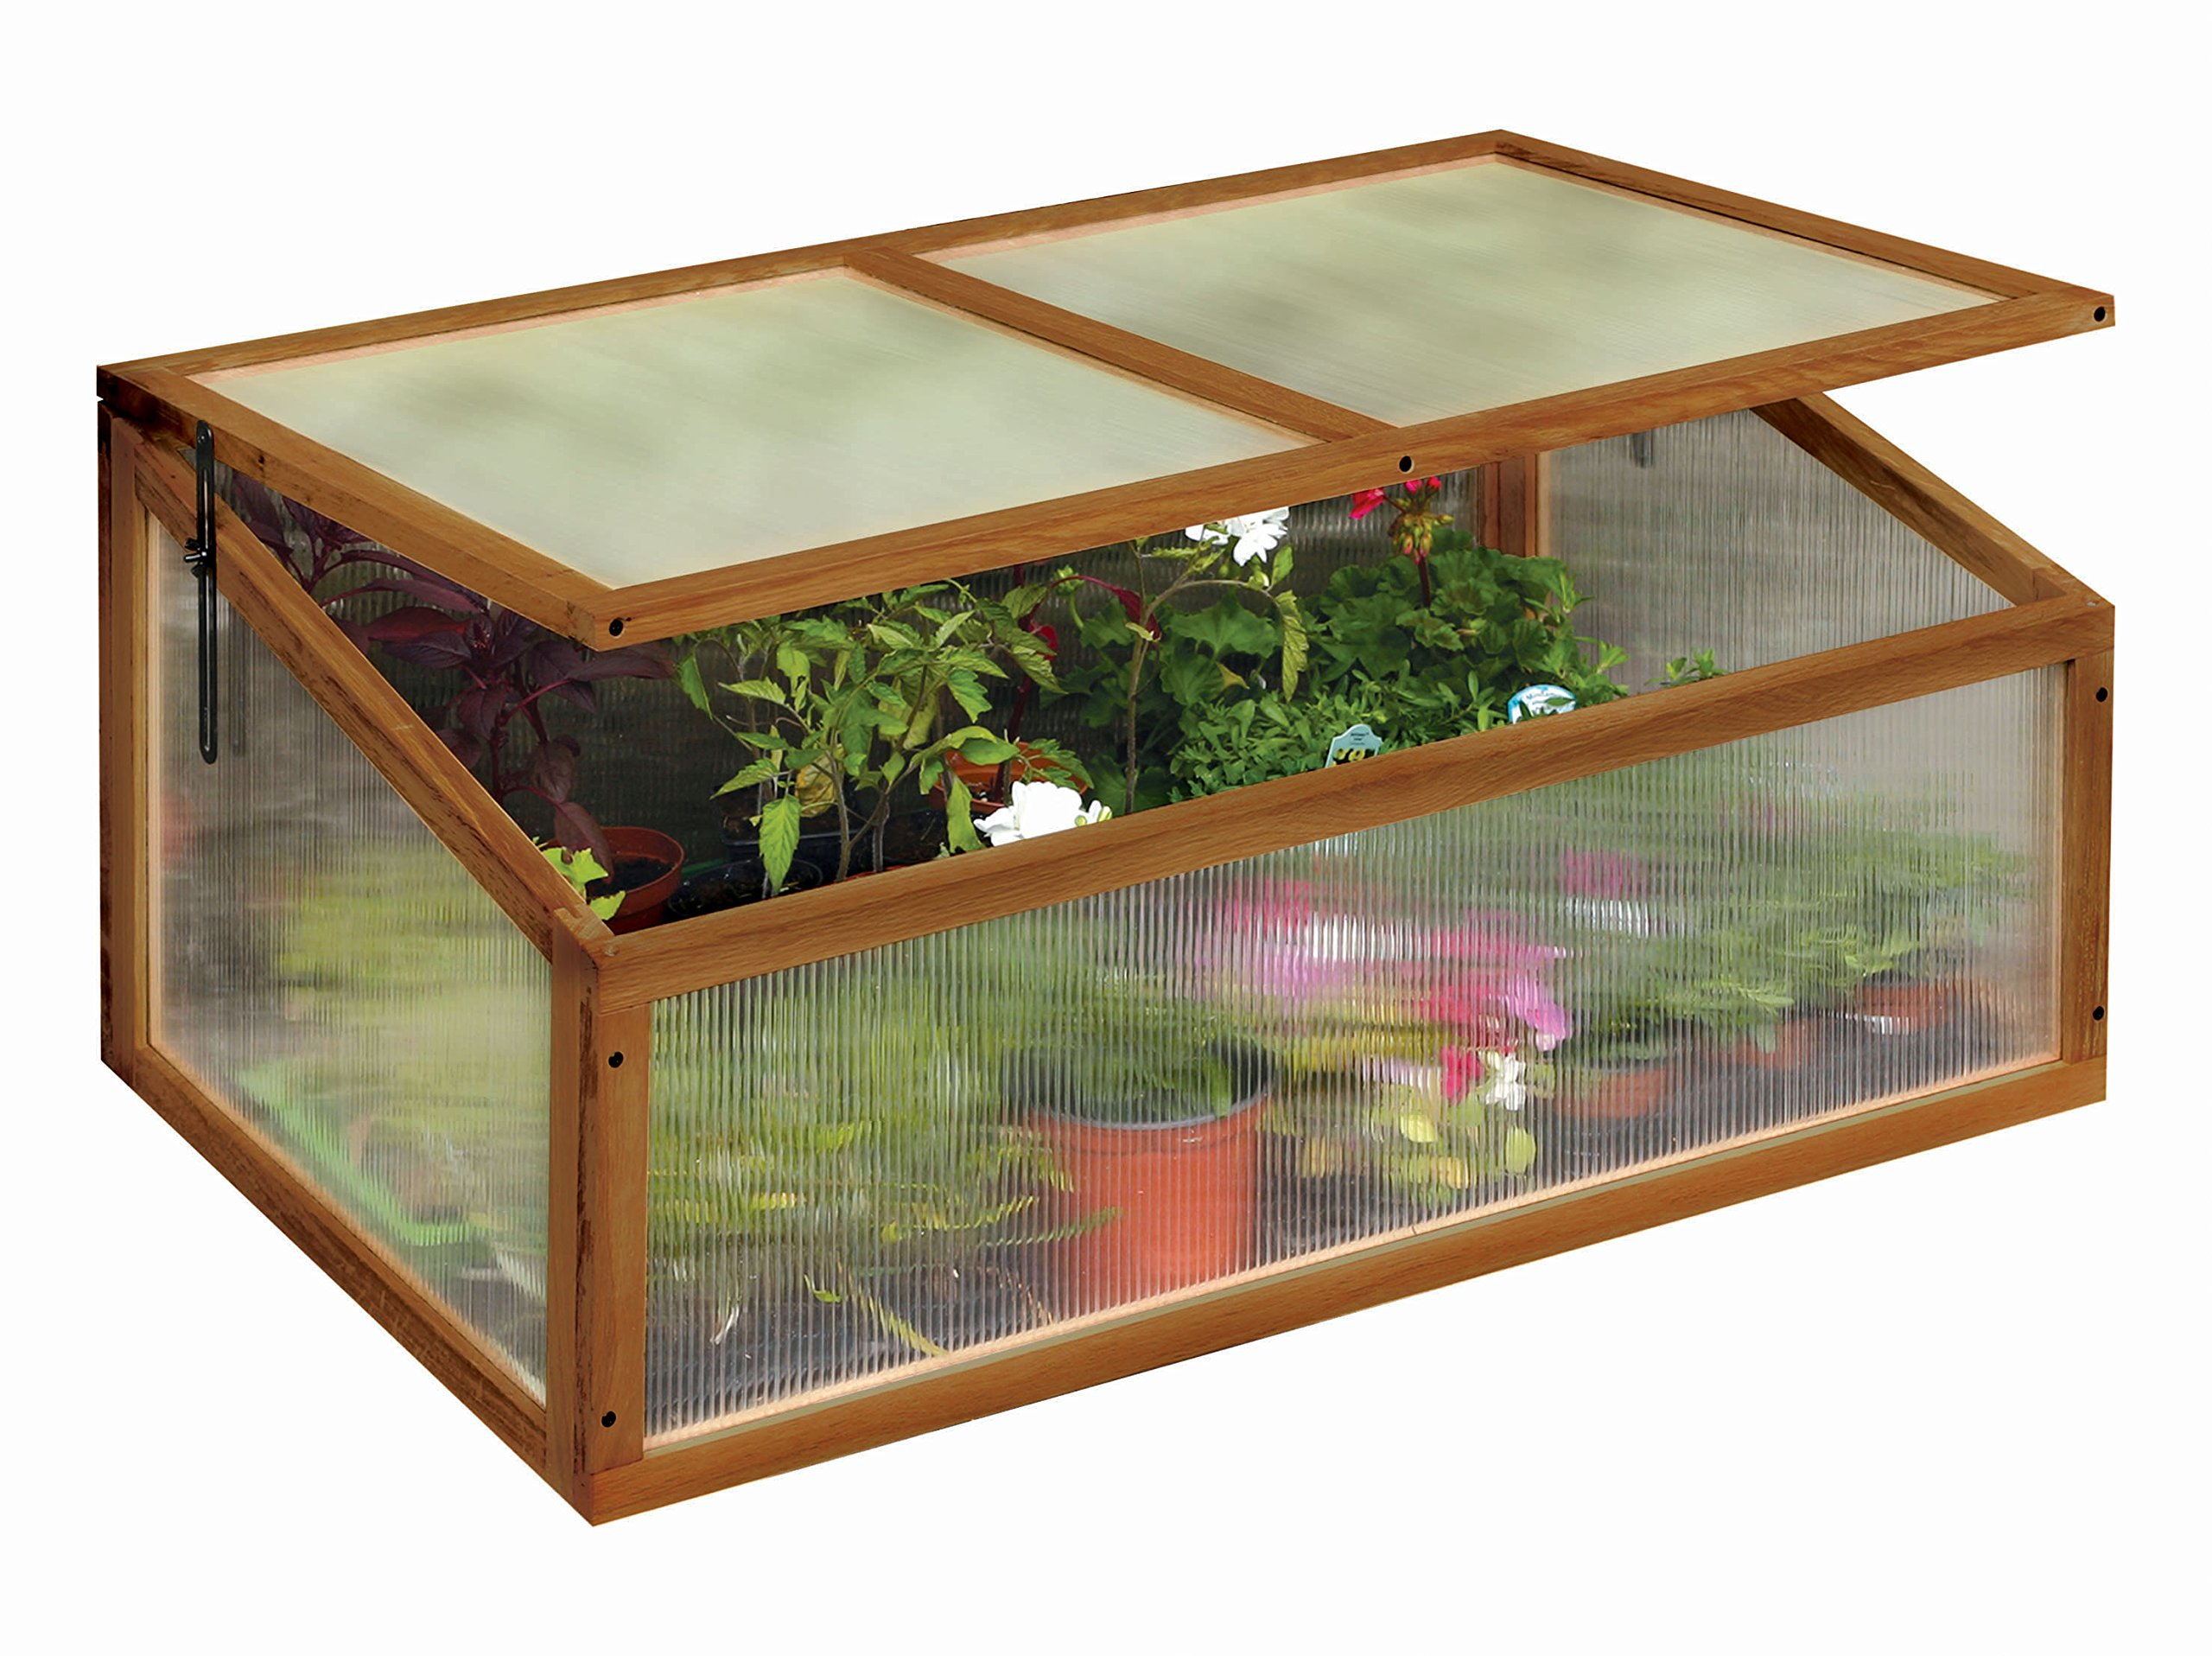 Tierra Garden 50-4400 Haxnicks Cold Frame Hardwood Greenhouse Box